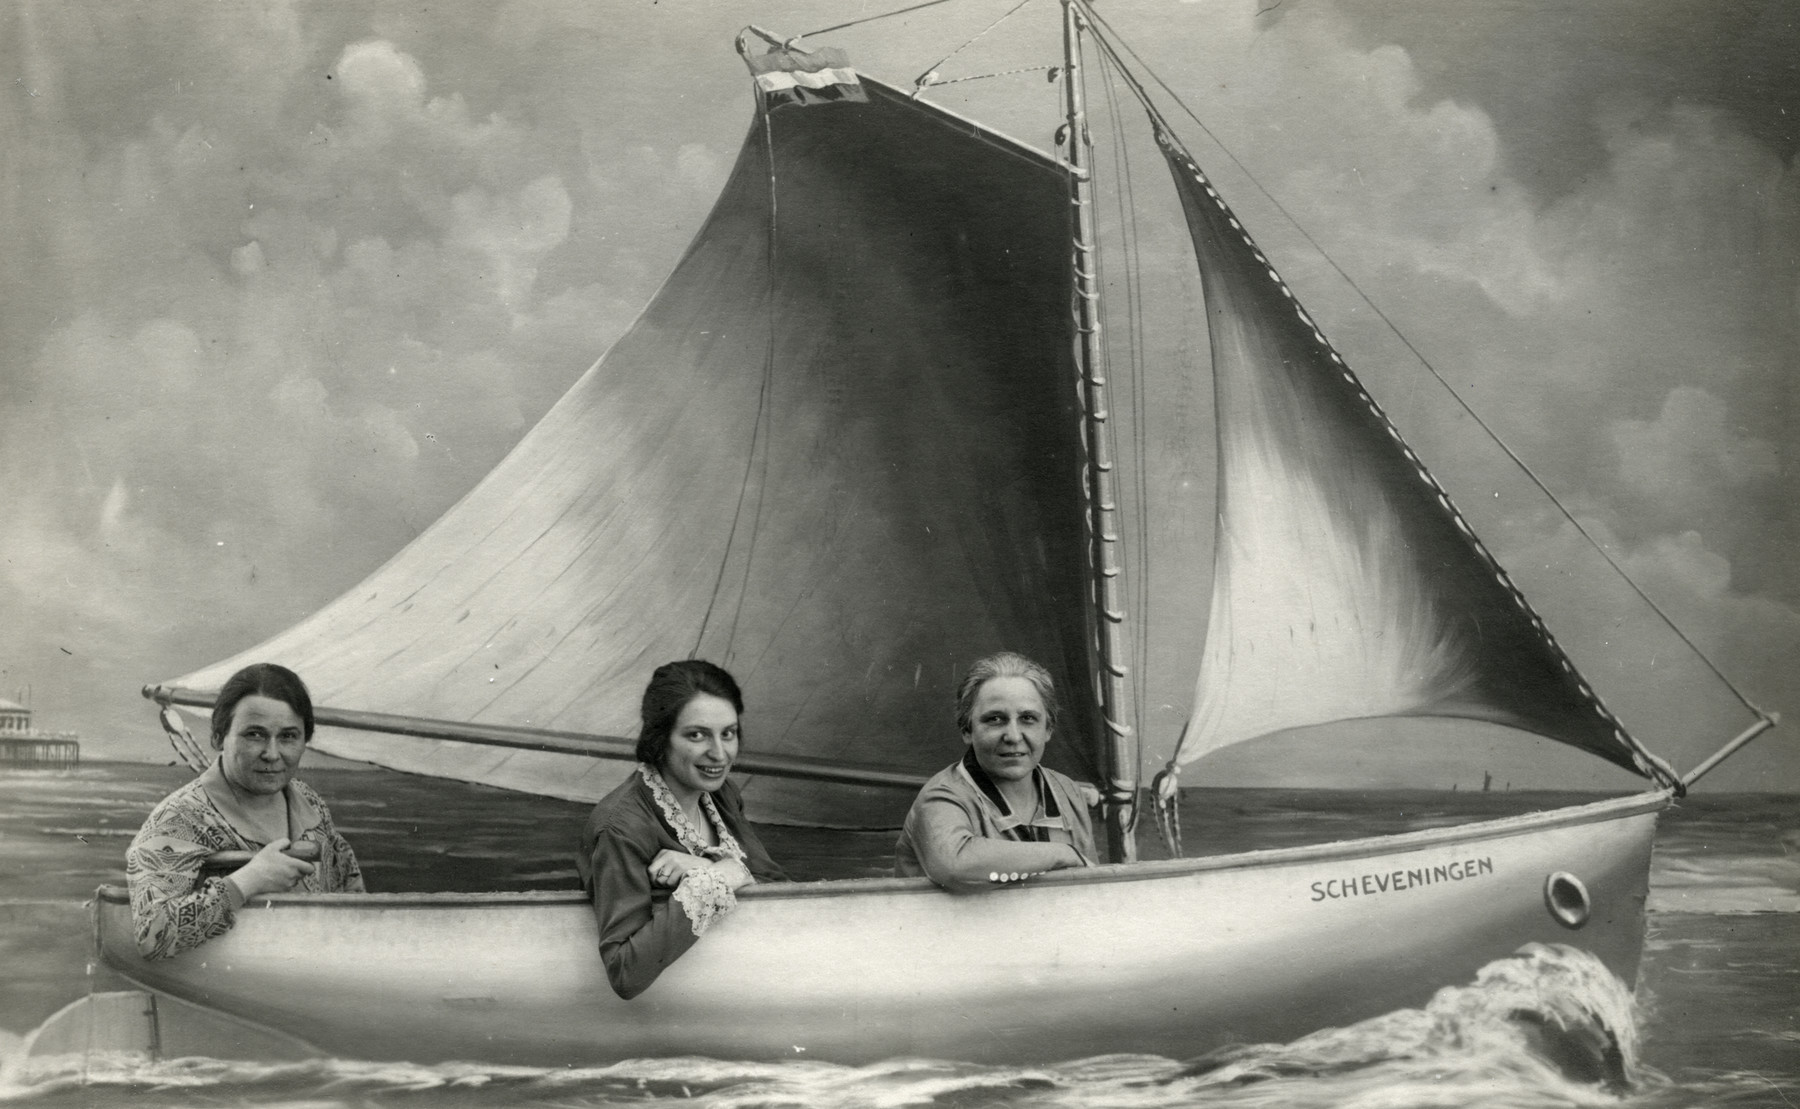 Studio portrait of three sisters on a pretend boat in Scheveningen, Holland.  Lotte van Collem Randerath is in the center.